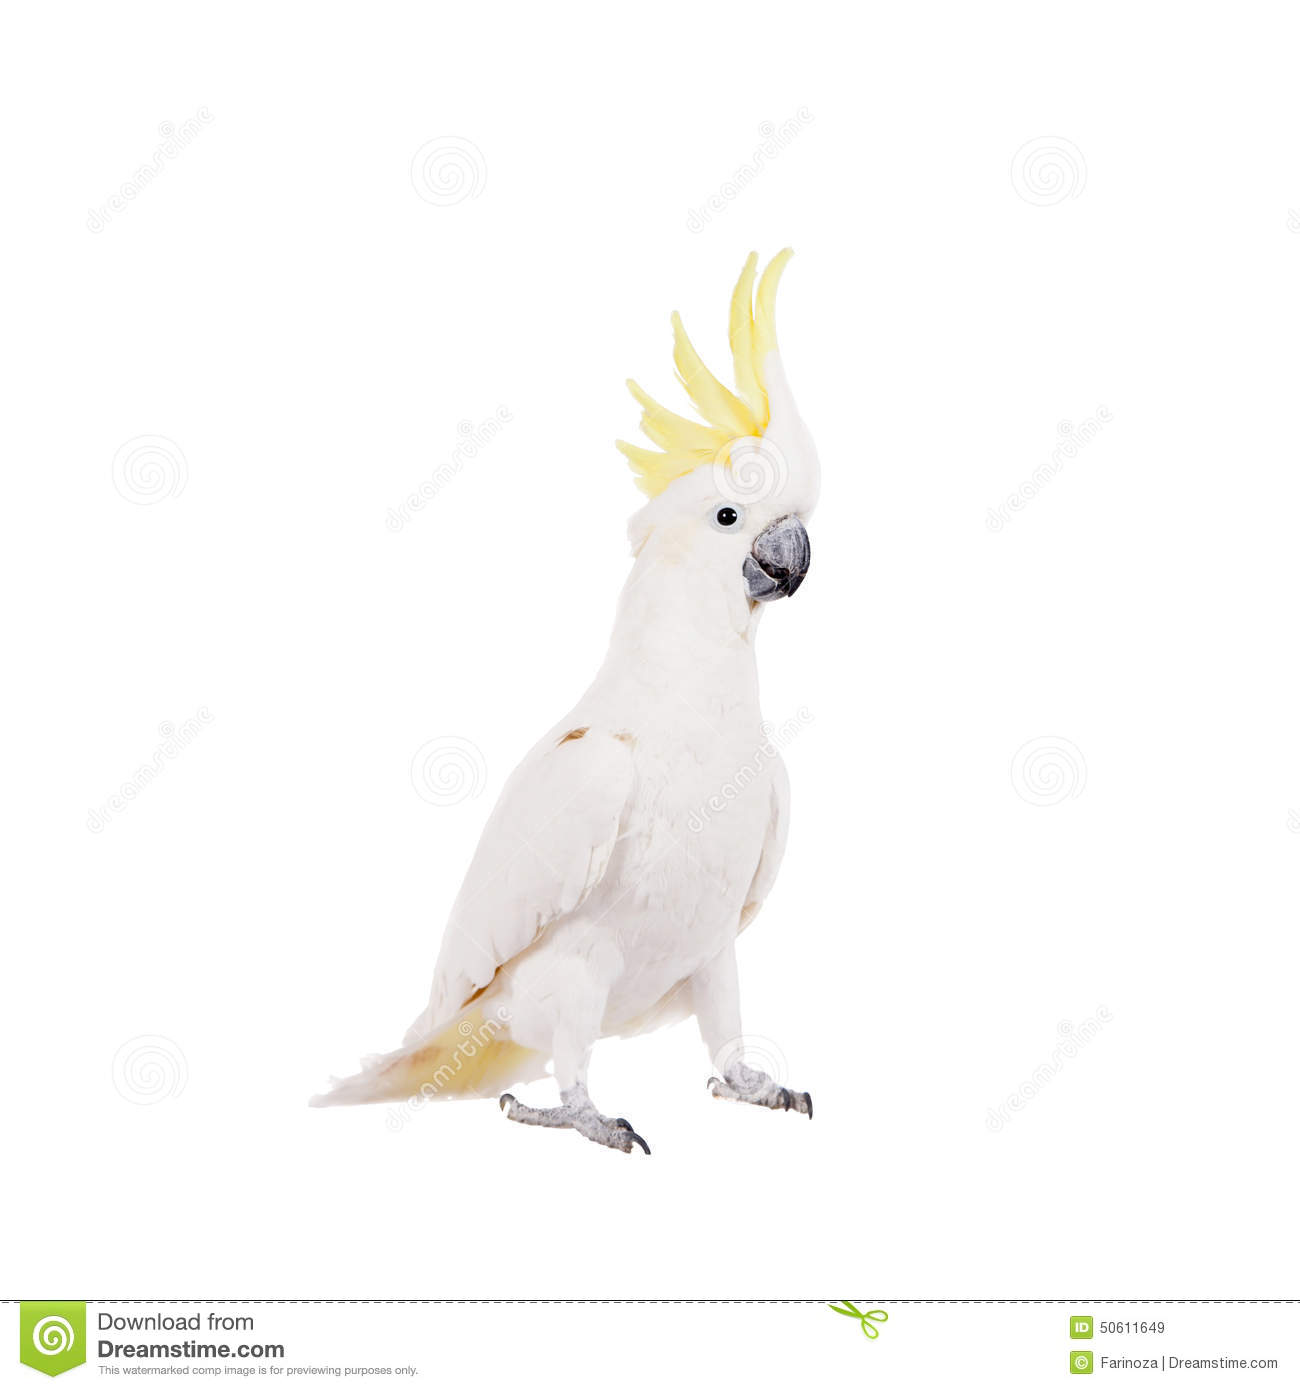 Sulphur-crested Cockatoo clipart #3, Download drawings